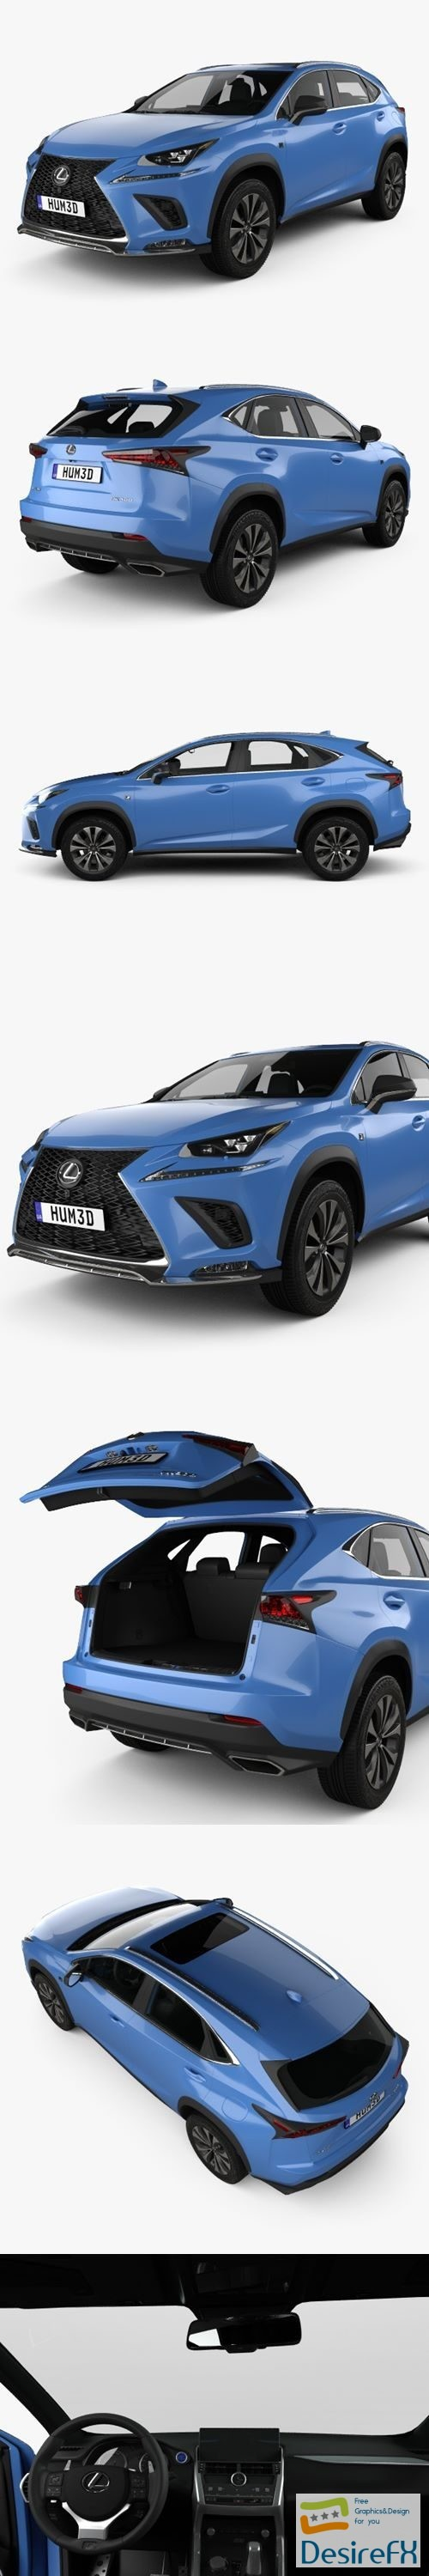 3d-models - Lexus NX F-sport with HQ interior 2017 3D Model